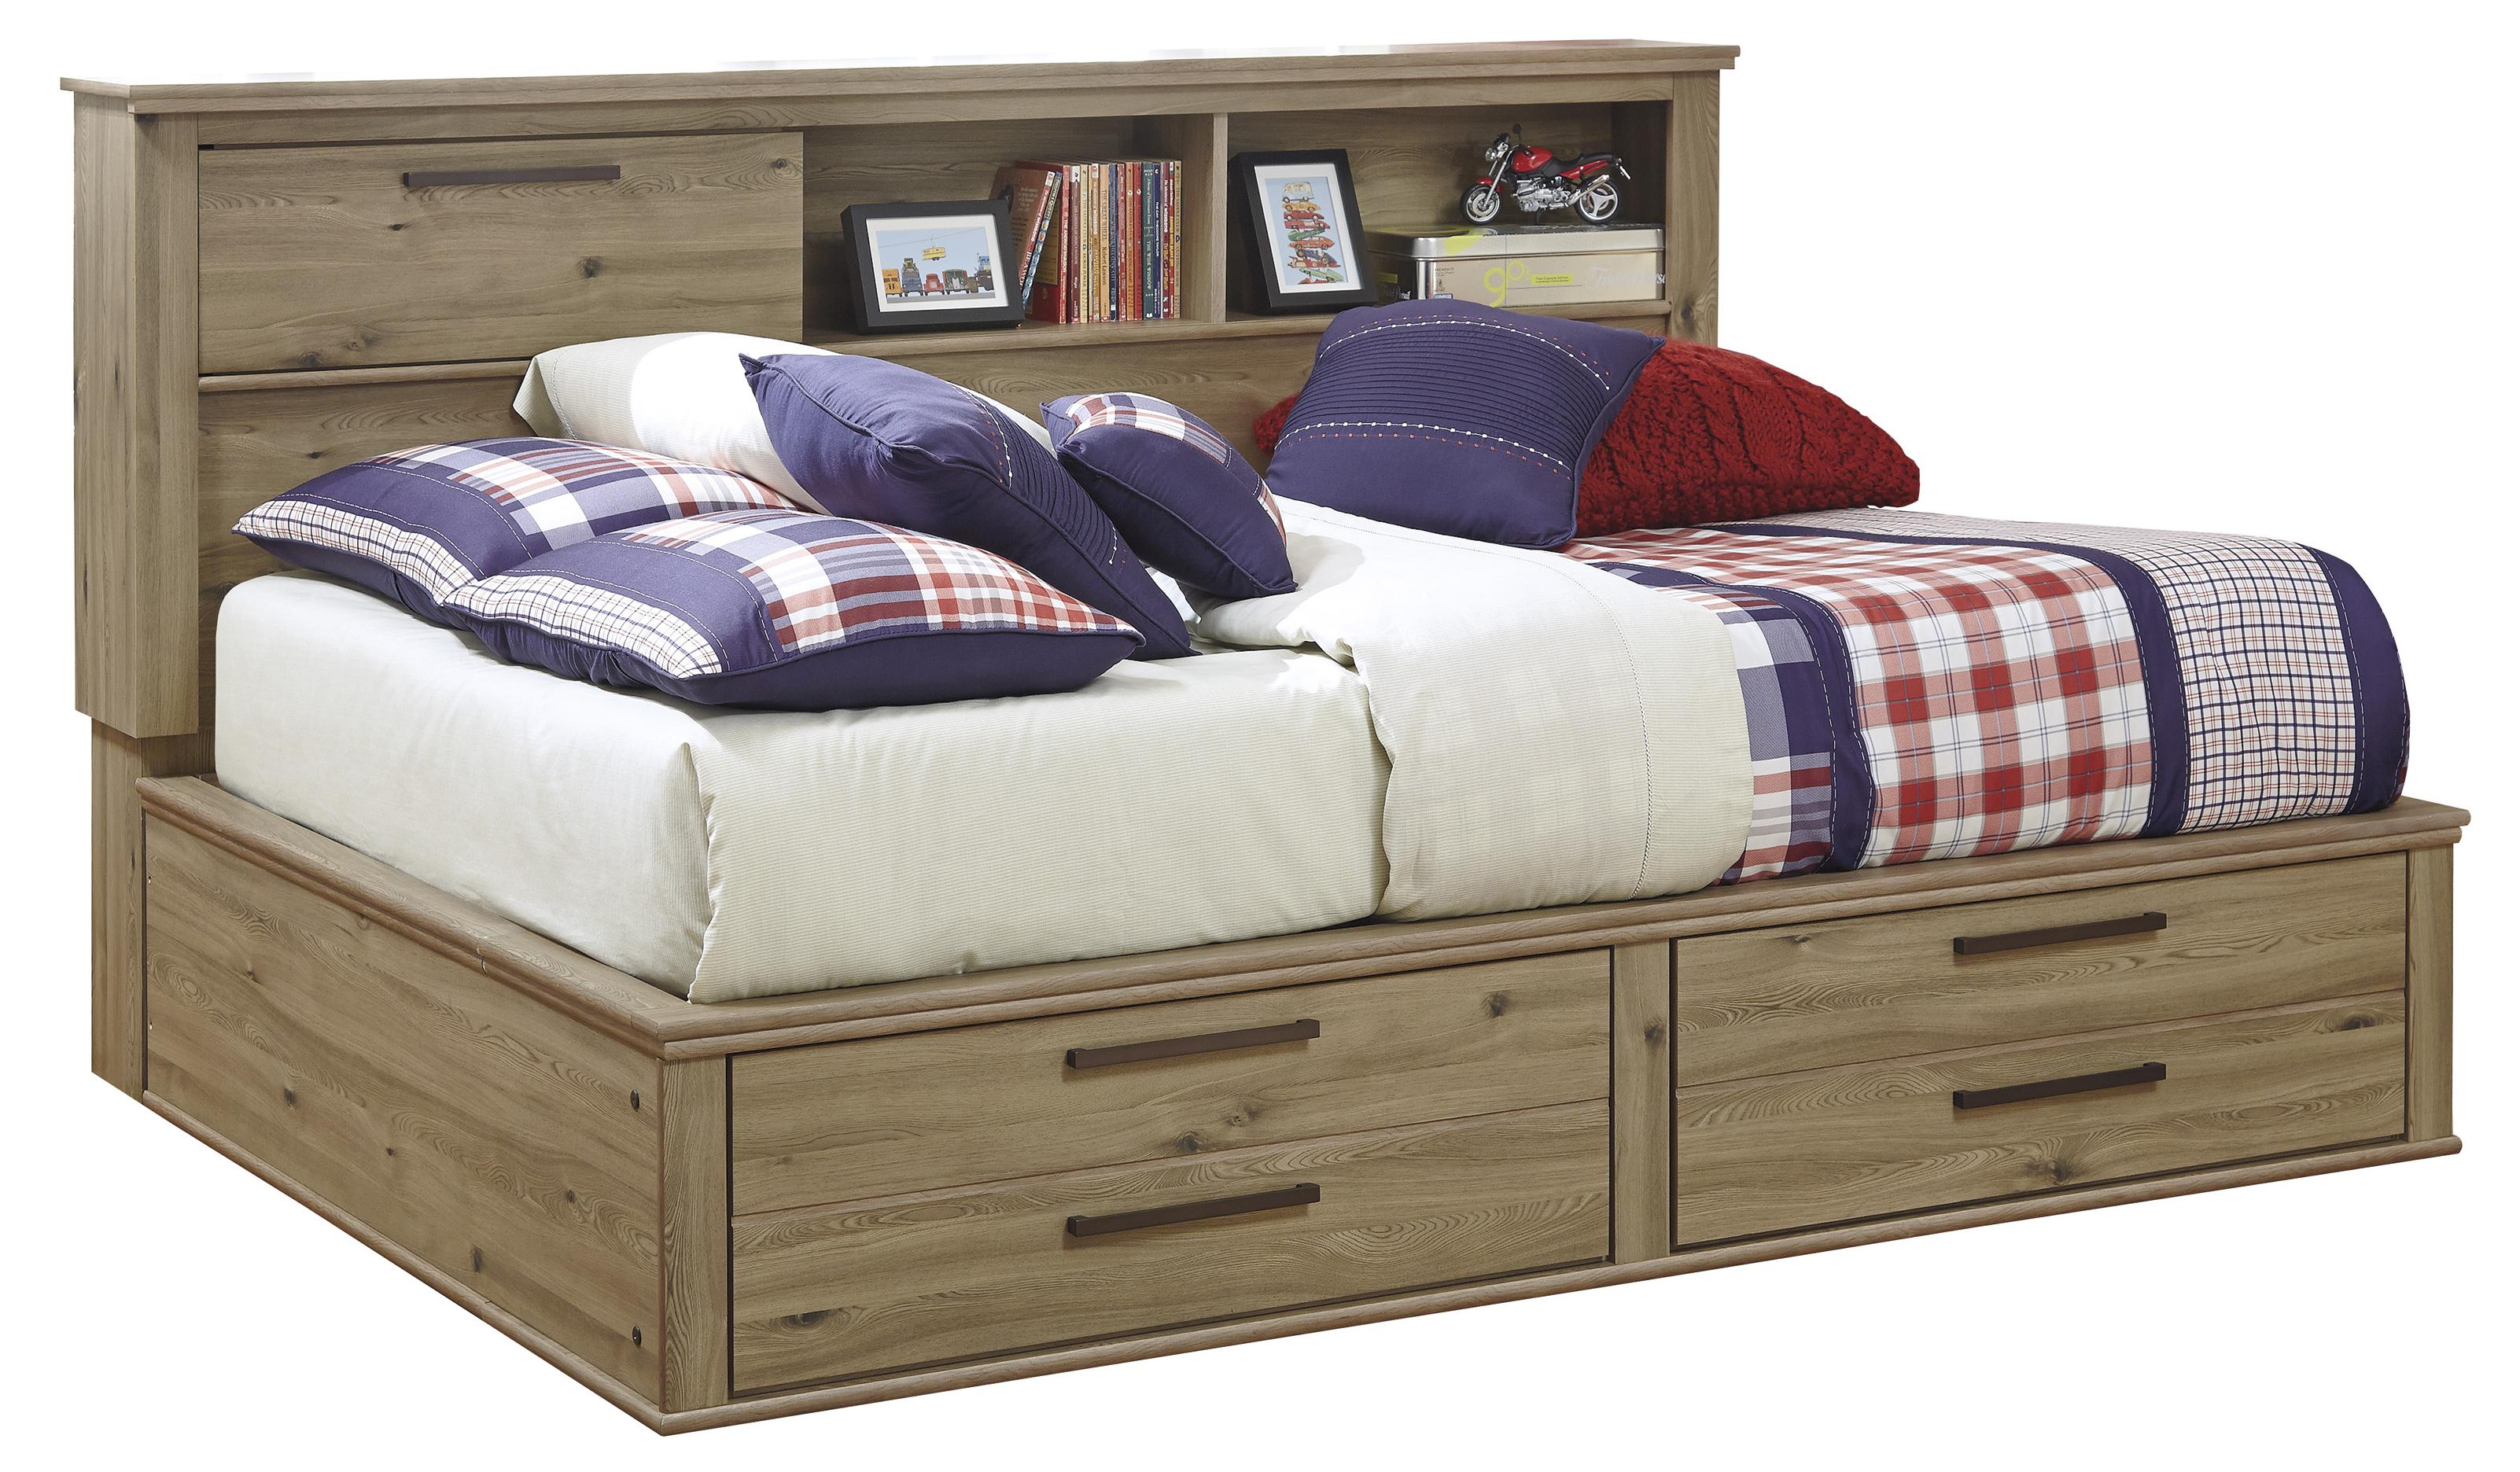 Signature Design by Ashley Dexifield Full Bookcase Daybed - Item Number: B298-85+05+88